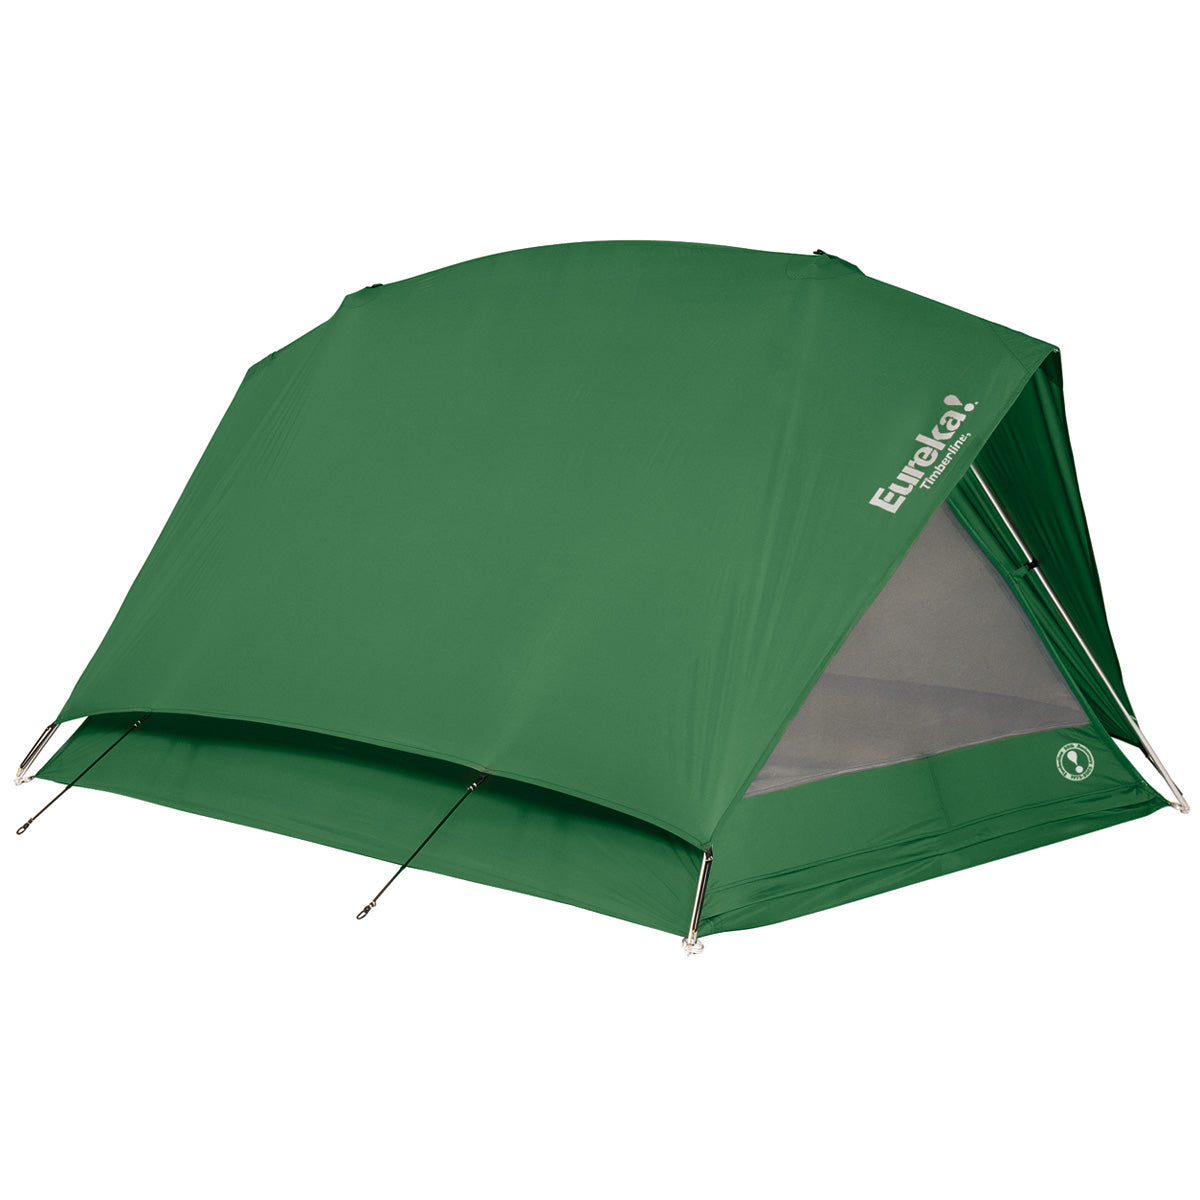 Eureka Timberline 2 Backpacking 2 Person Tent - Trailside Outfitter  sc 1 st  Trailside Outfitter & Eureka Timberline 2 Backpacking 2 Person Tent u2013 Trailside Outfitter